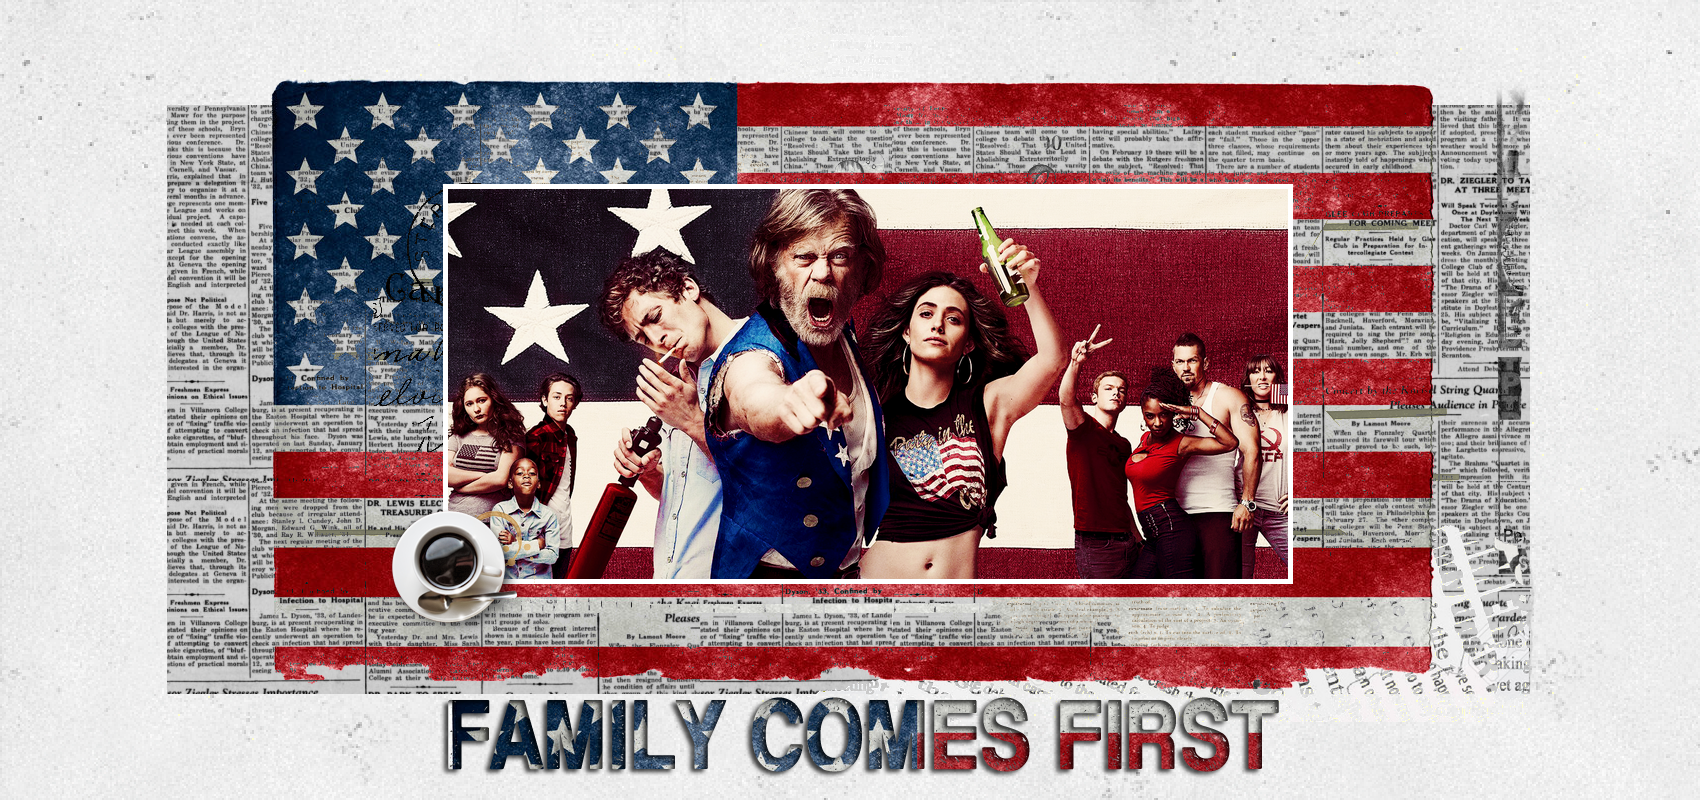 Family comes first